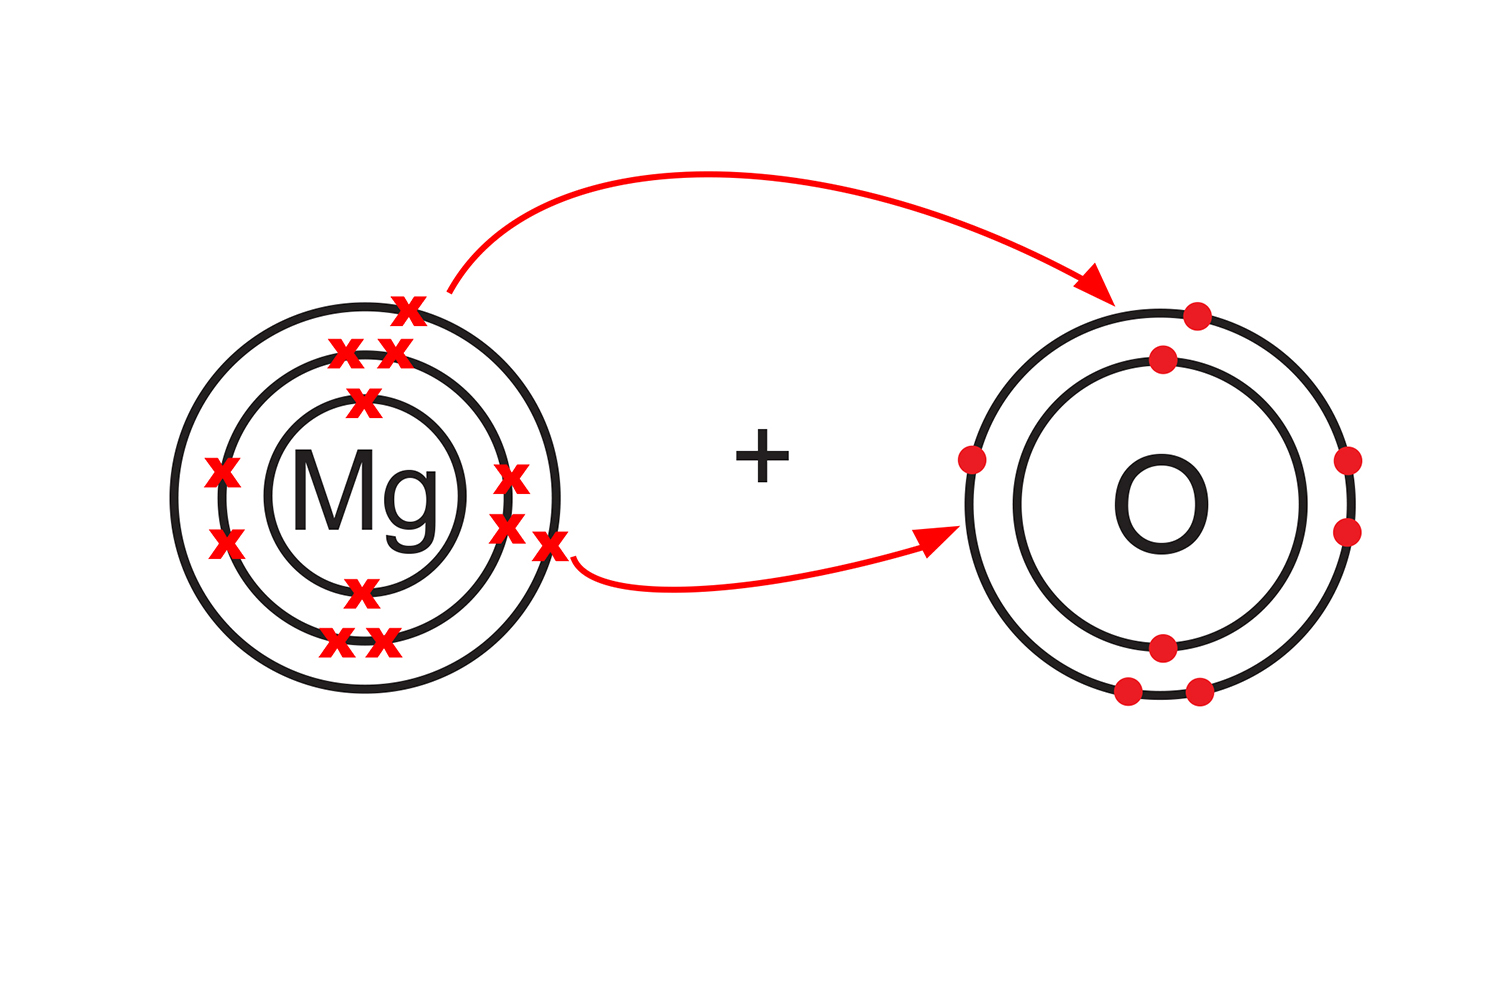 Similarly group 2 and 6 have the same valency of 2 meaning they are  likely to react. Magnesium (group 2) looses 2 valence electrons to oxygen (group 6)